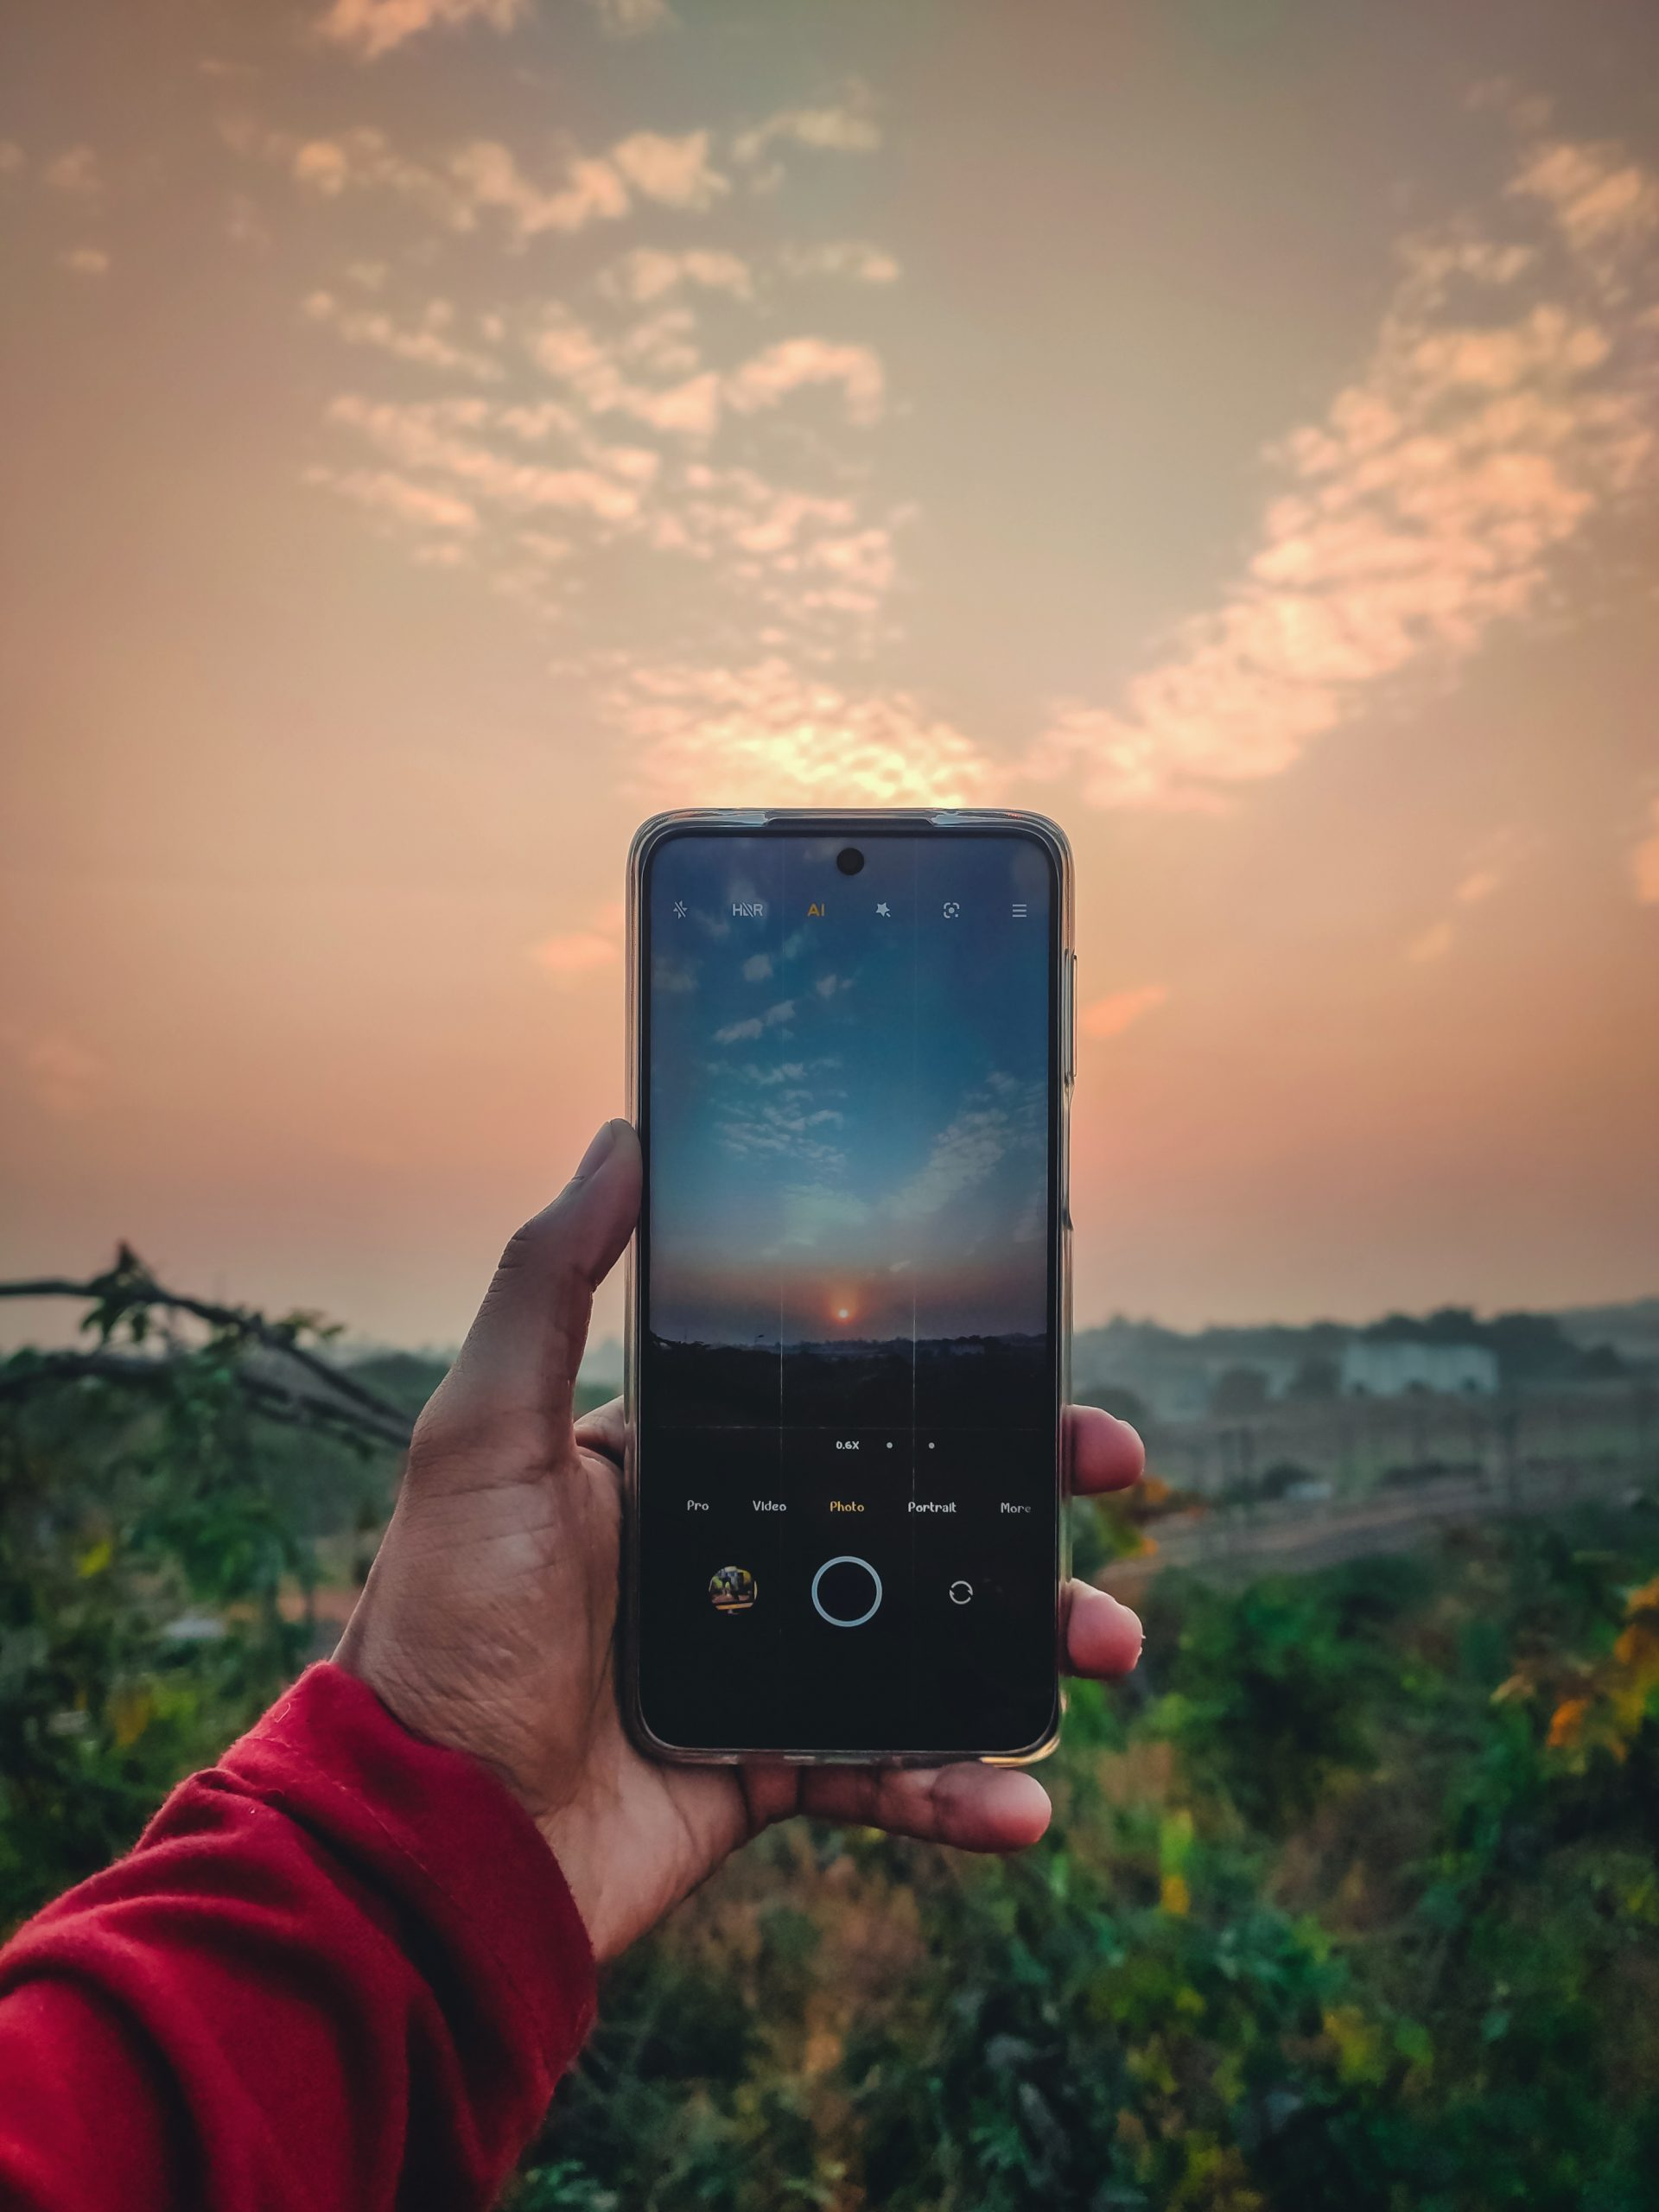 Capturing sunset view in mobile phone